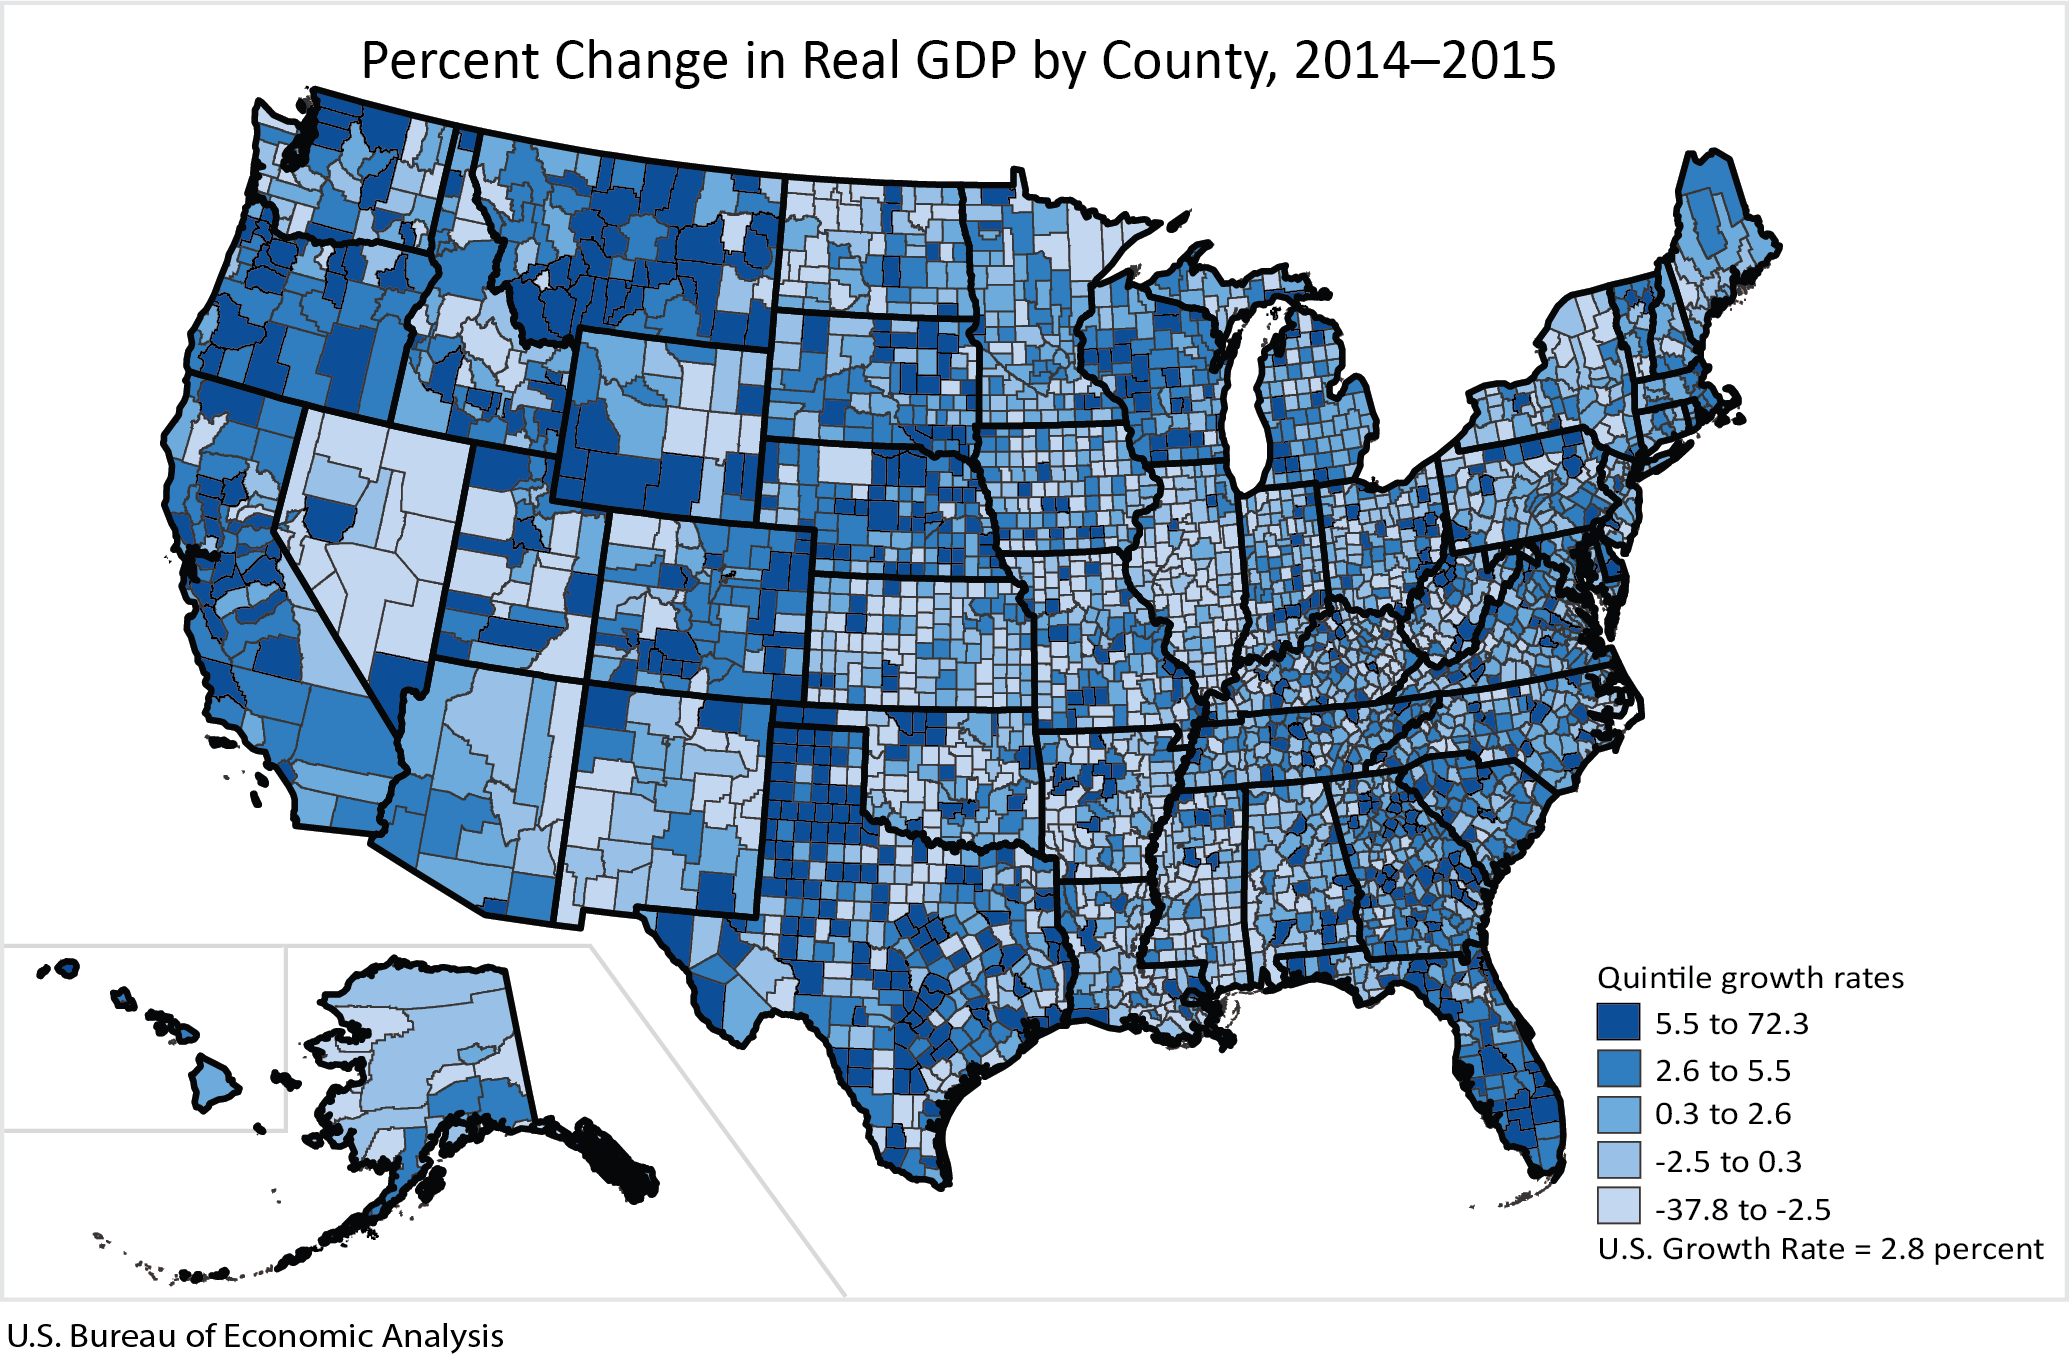 Percent Change in Real GDP by County, 2014-2015